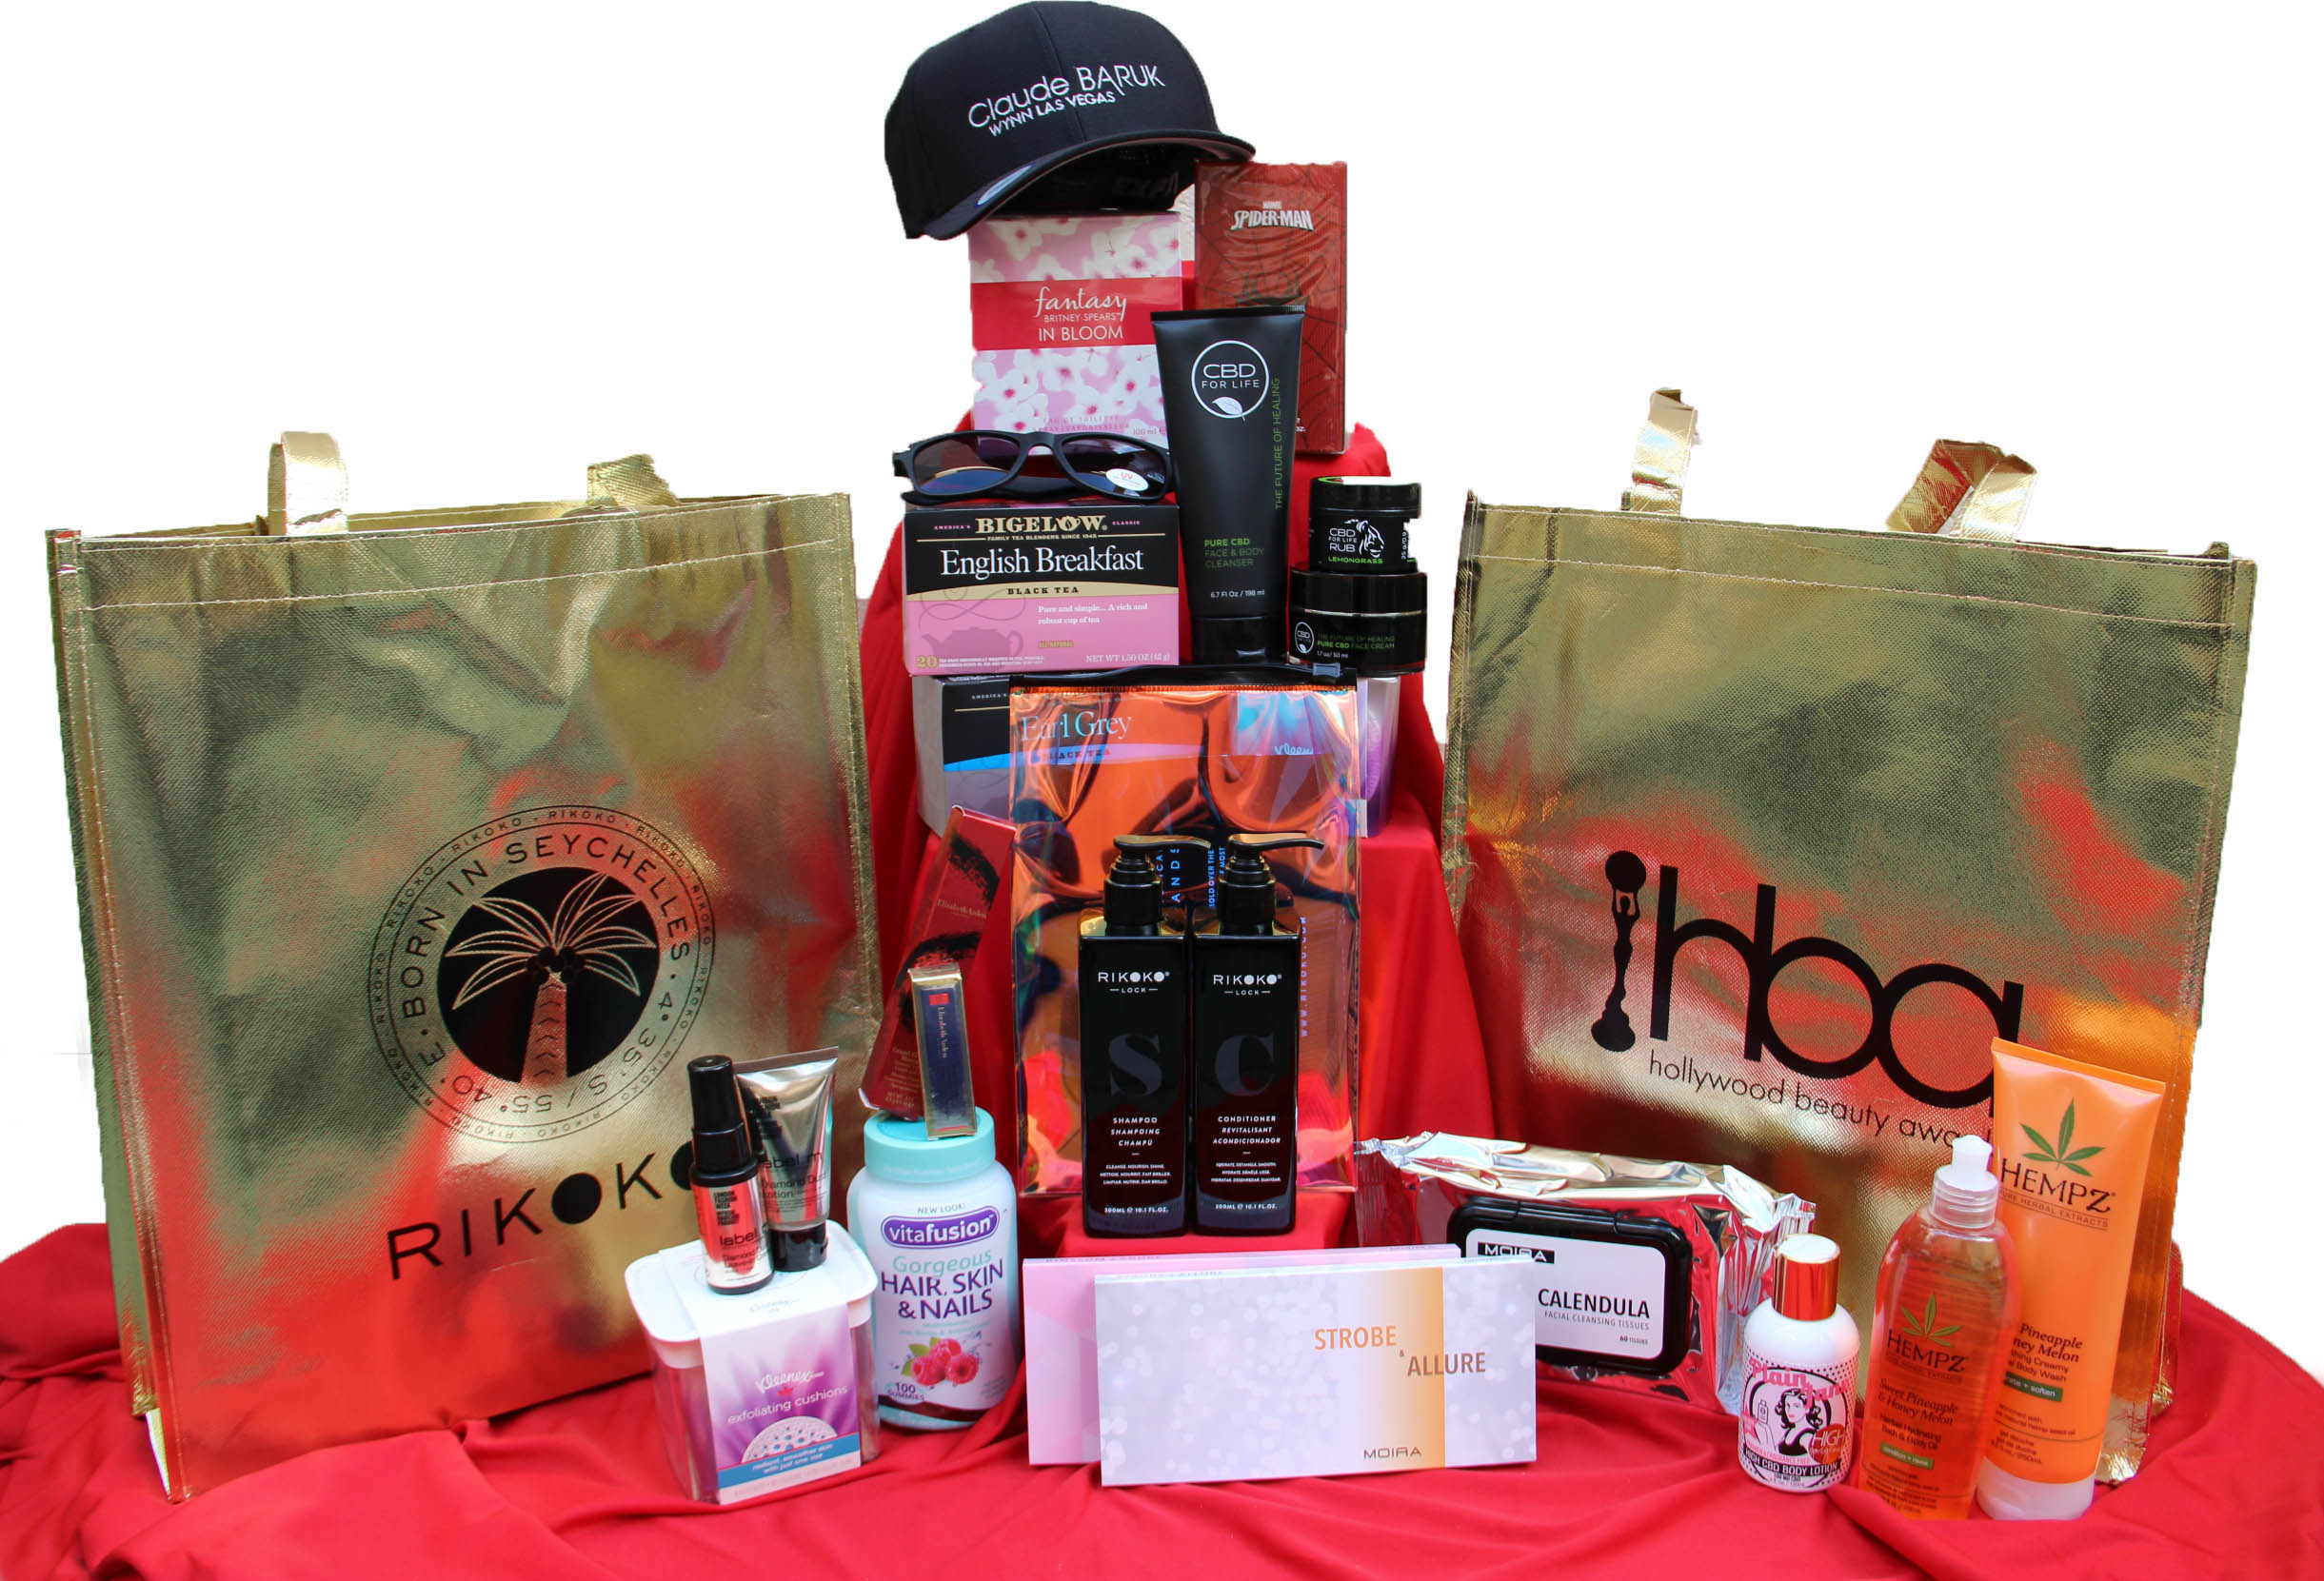 Hollywood beauty awards gift bag, cbd for life, elizabeth arden, vitafusion